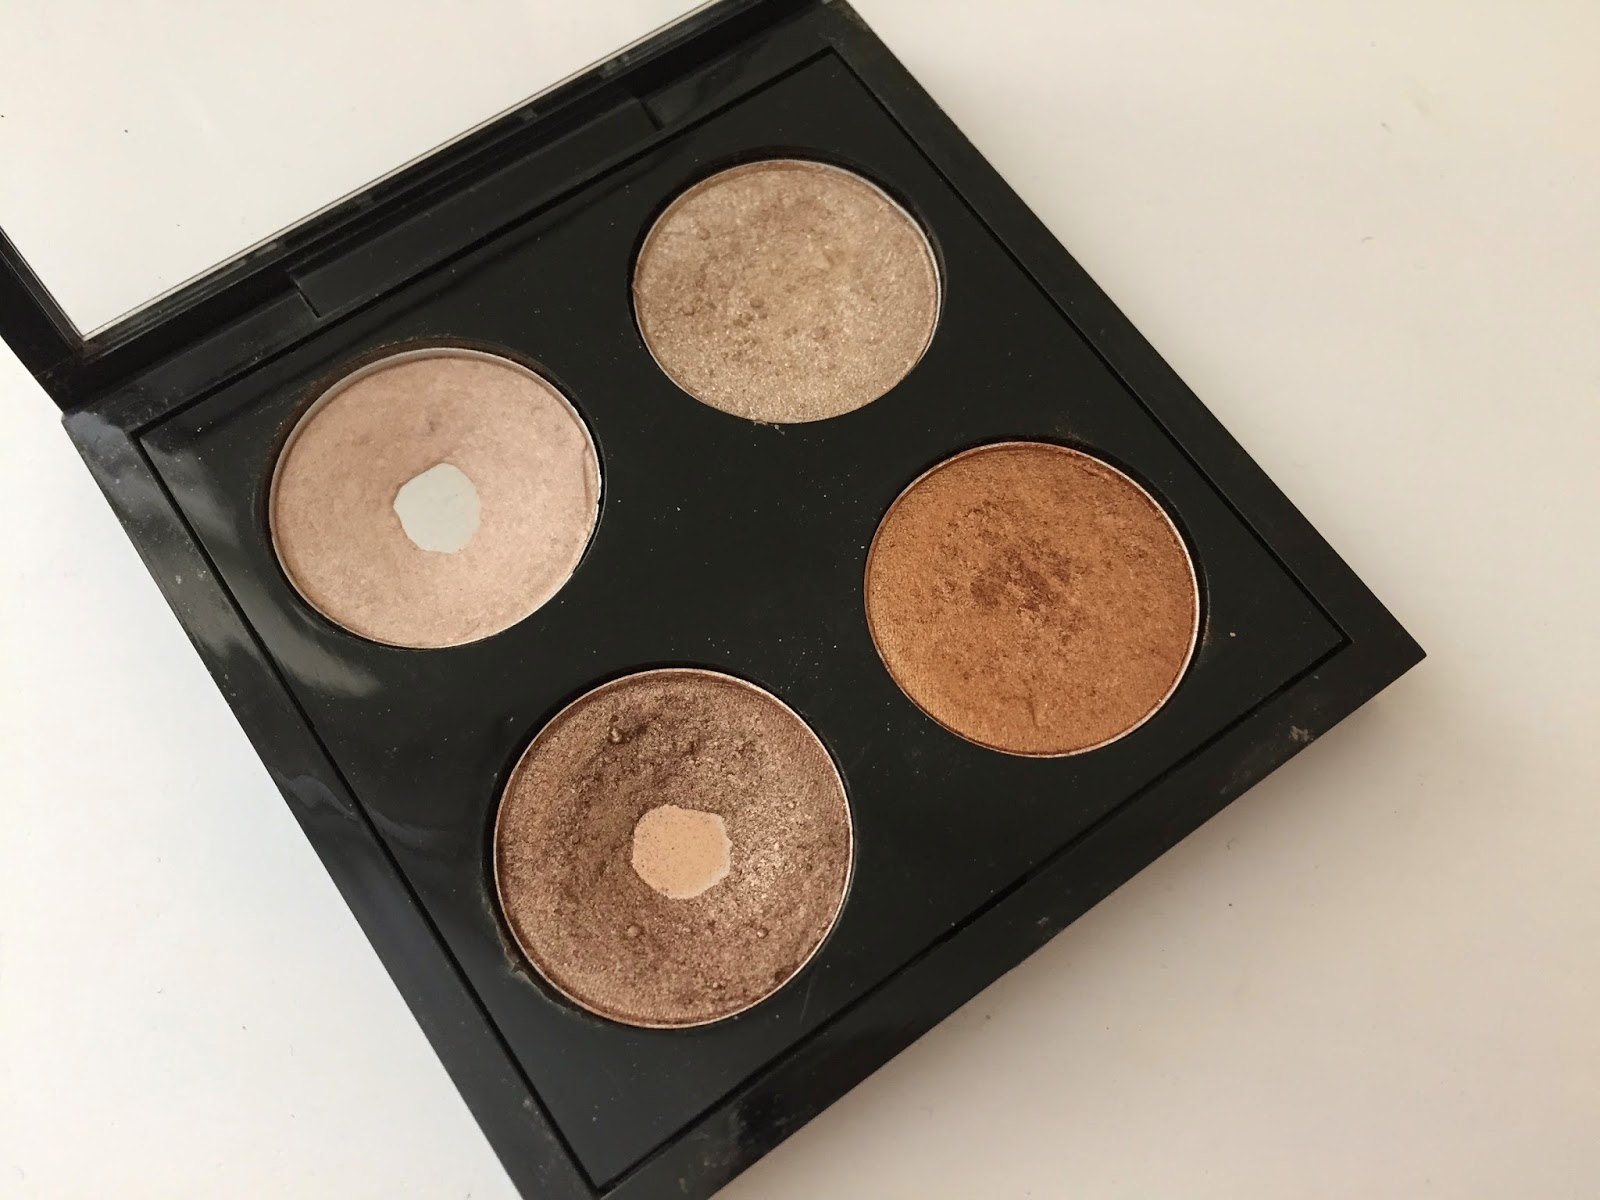 MAC_Quad_Shroom_Retrospek_Woodwinked_Amber_Lights_Eyeshadows